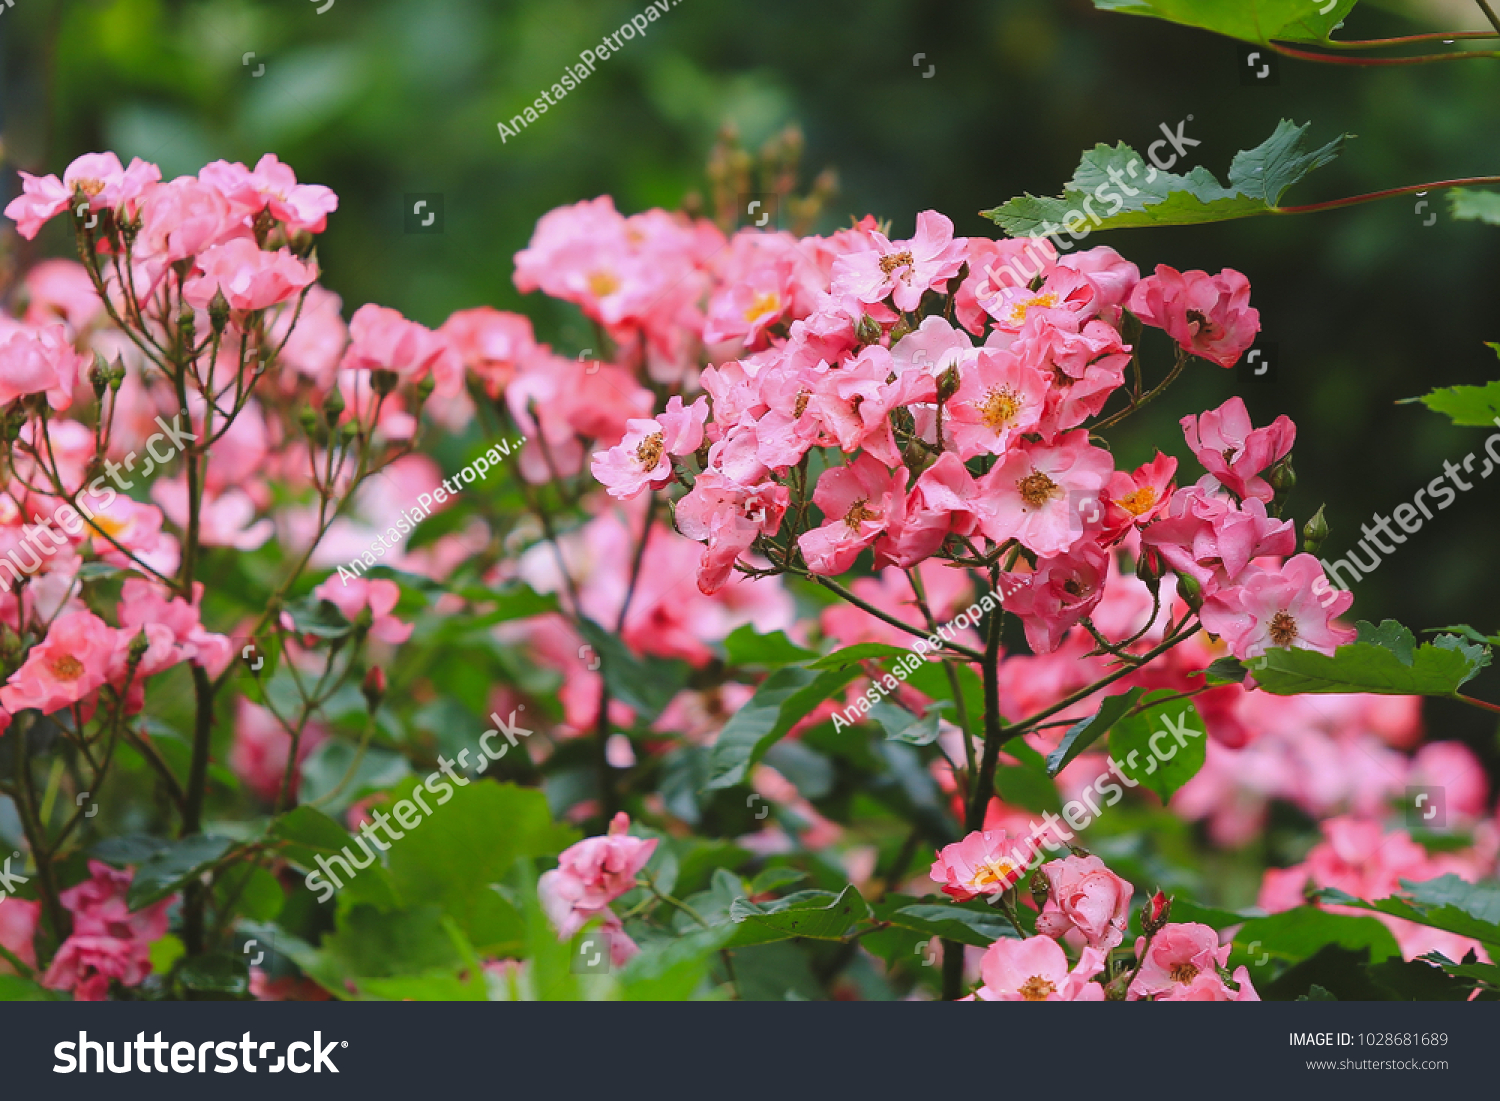 Flowering Bushes Of Wild Pink Roses After Rain With Water Drops